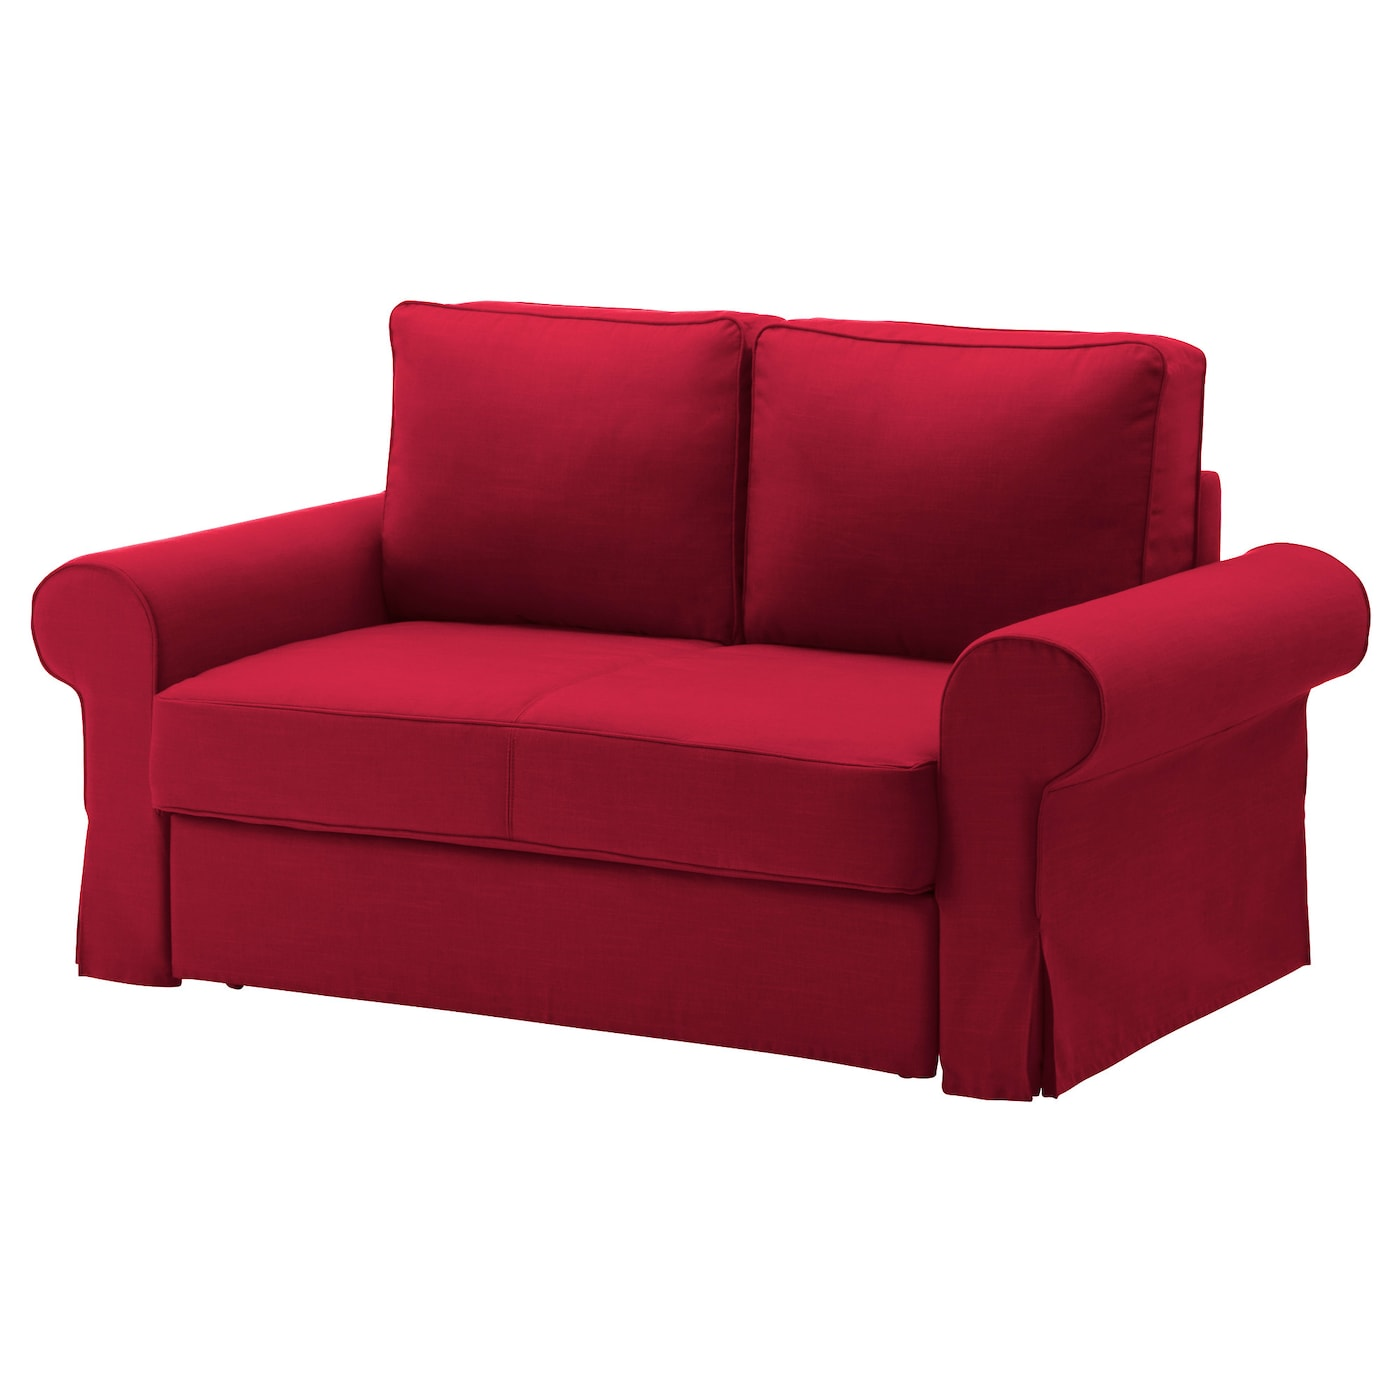 Backabro two seat sofa bed nordvalla red ikea for Sofa bed no mattress